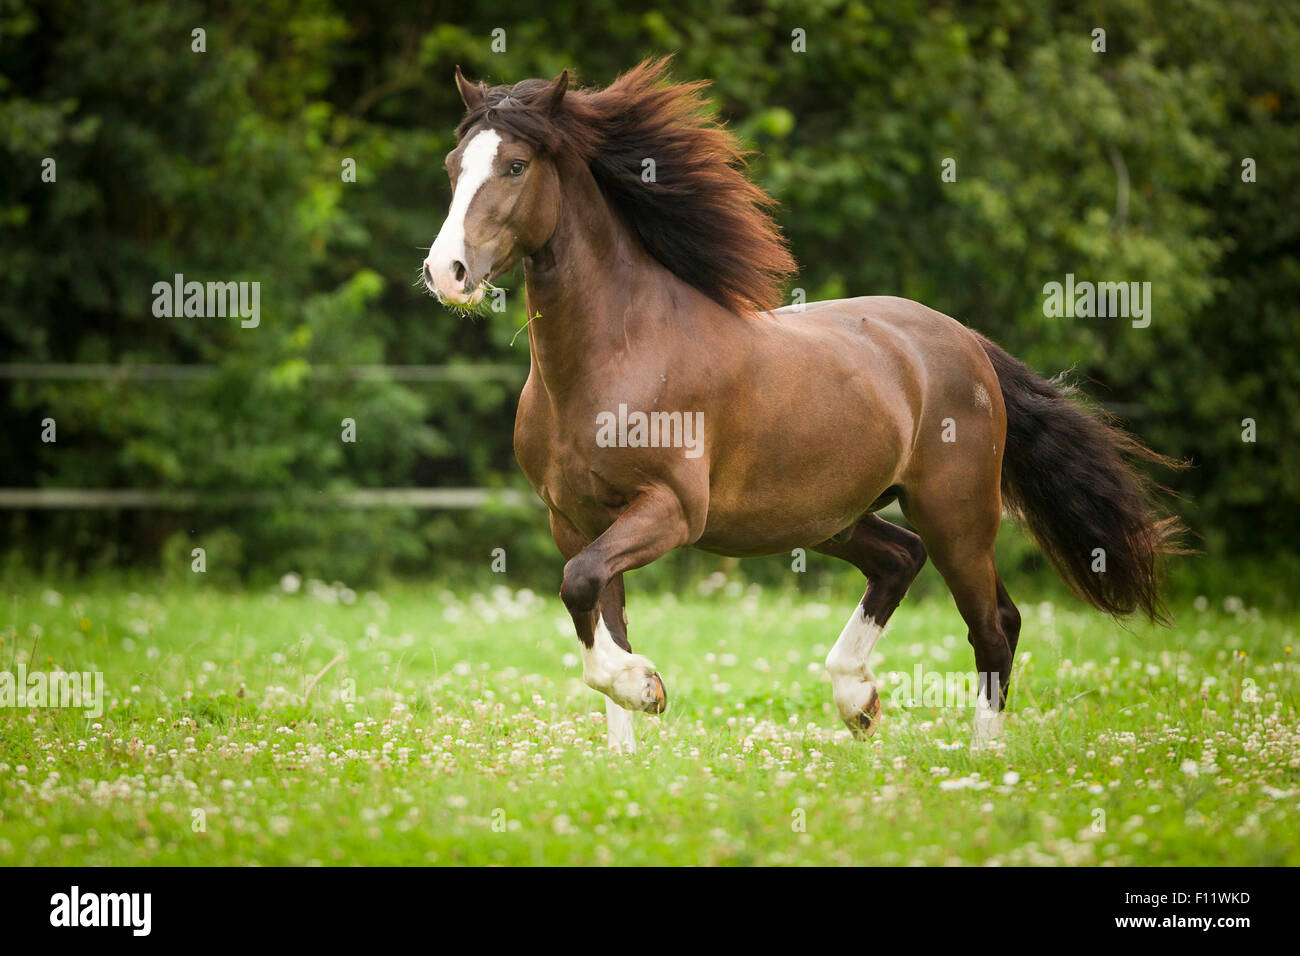 Welsh Pony, Section D Chestnut gelding galloping pasture - Stock Image